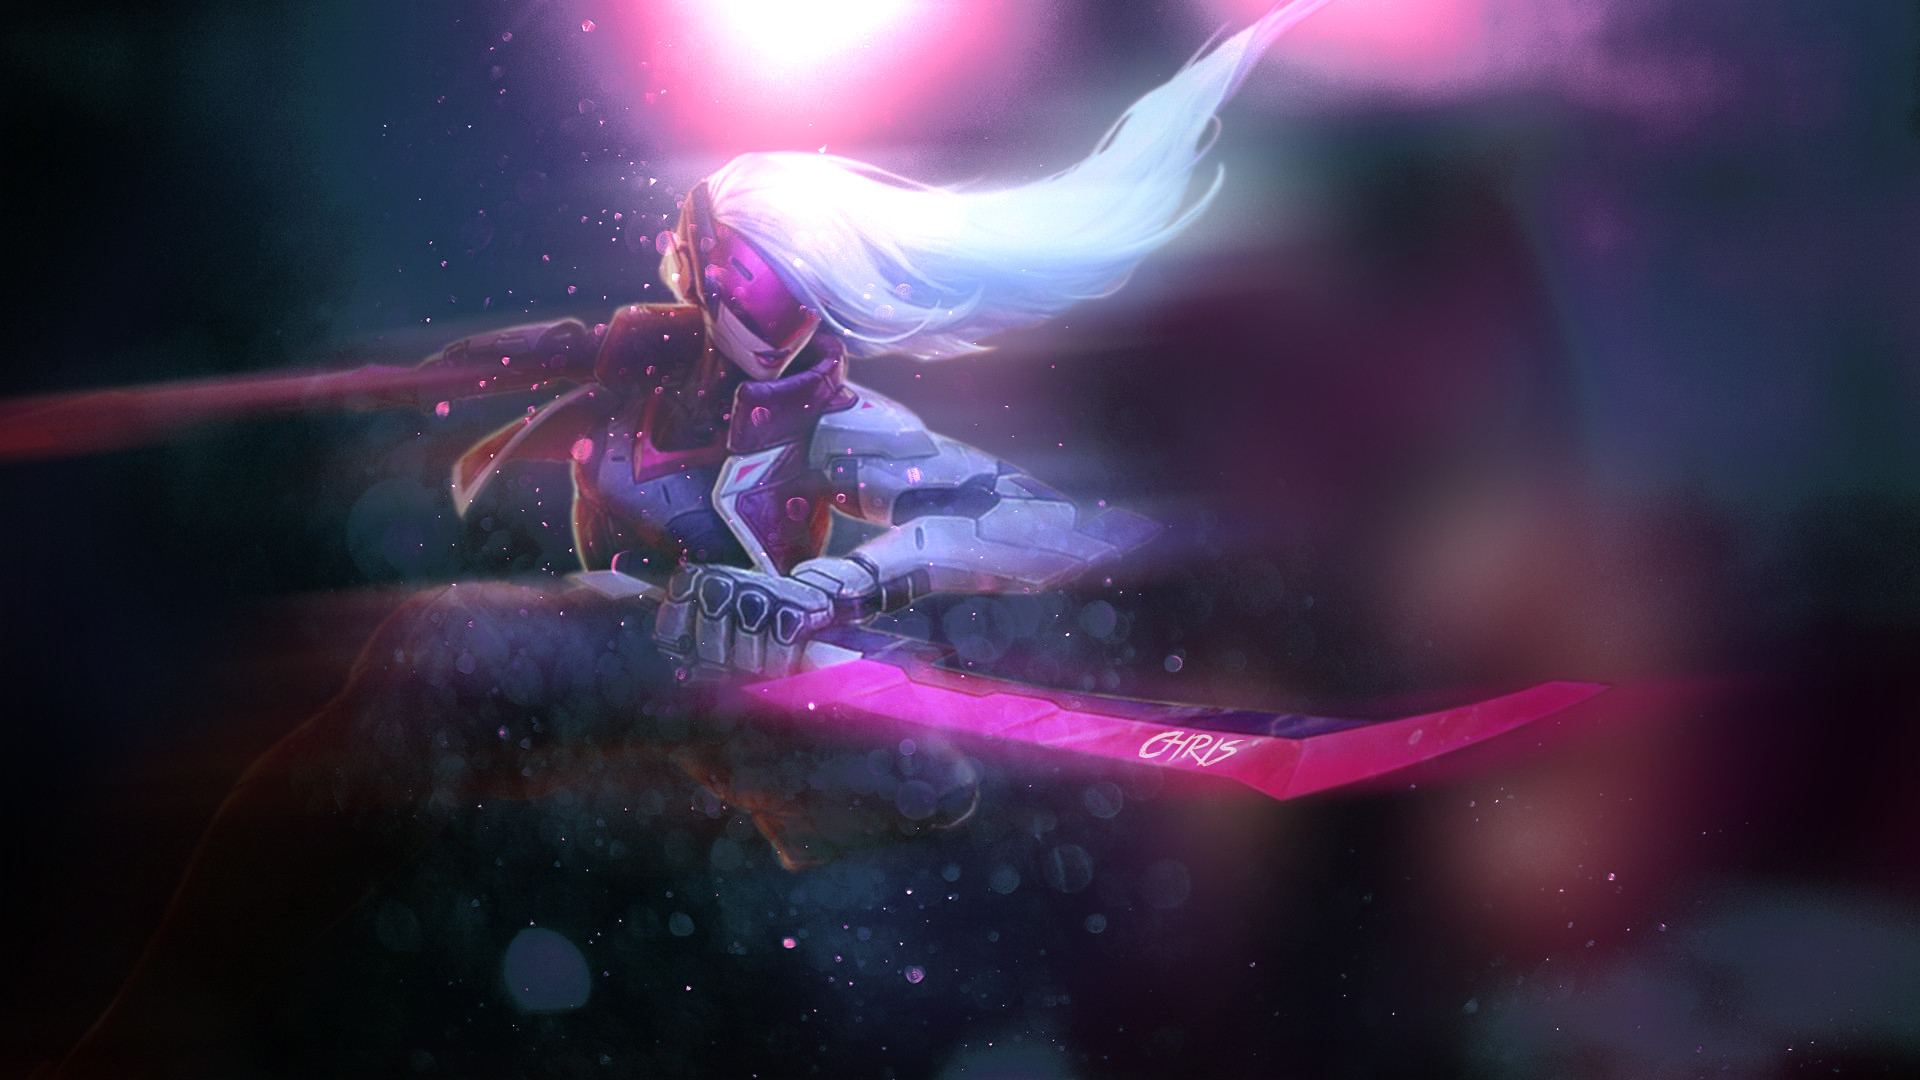 1920x1080 ... League of Legends PROJECT: Katarina Wallpaper by KPPOnline